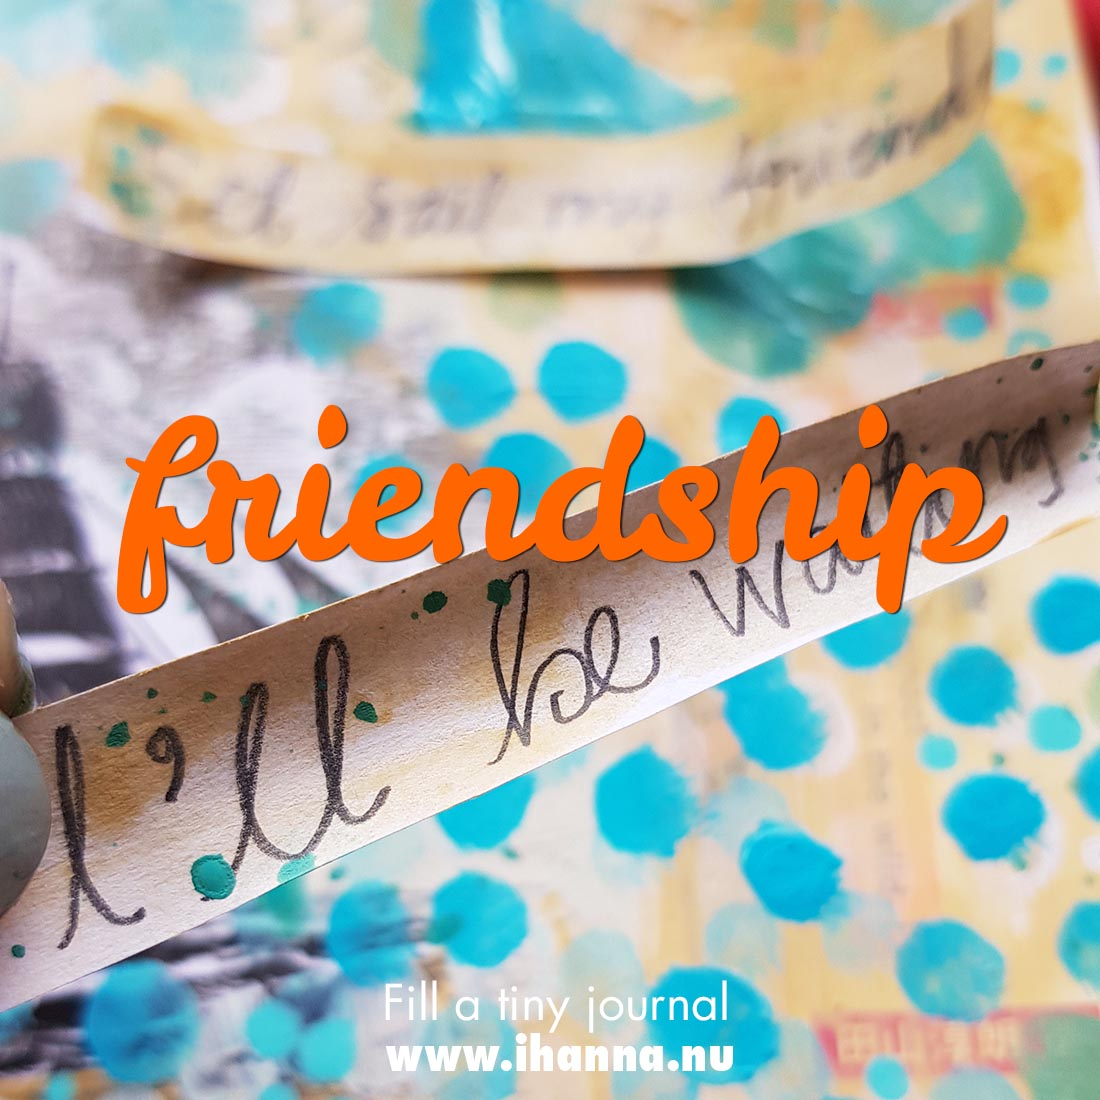 Fill a tiny Journal: Friendship